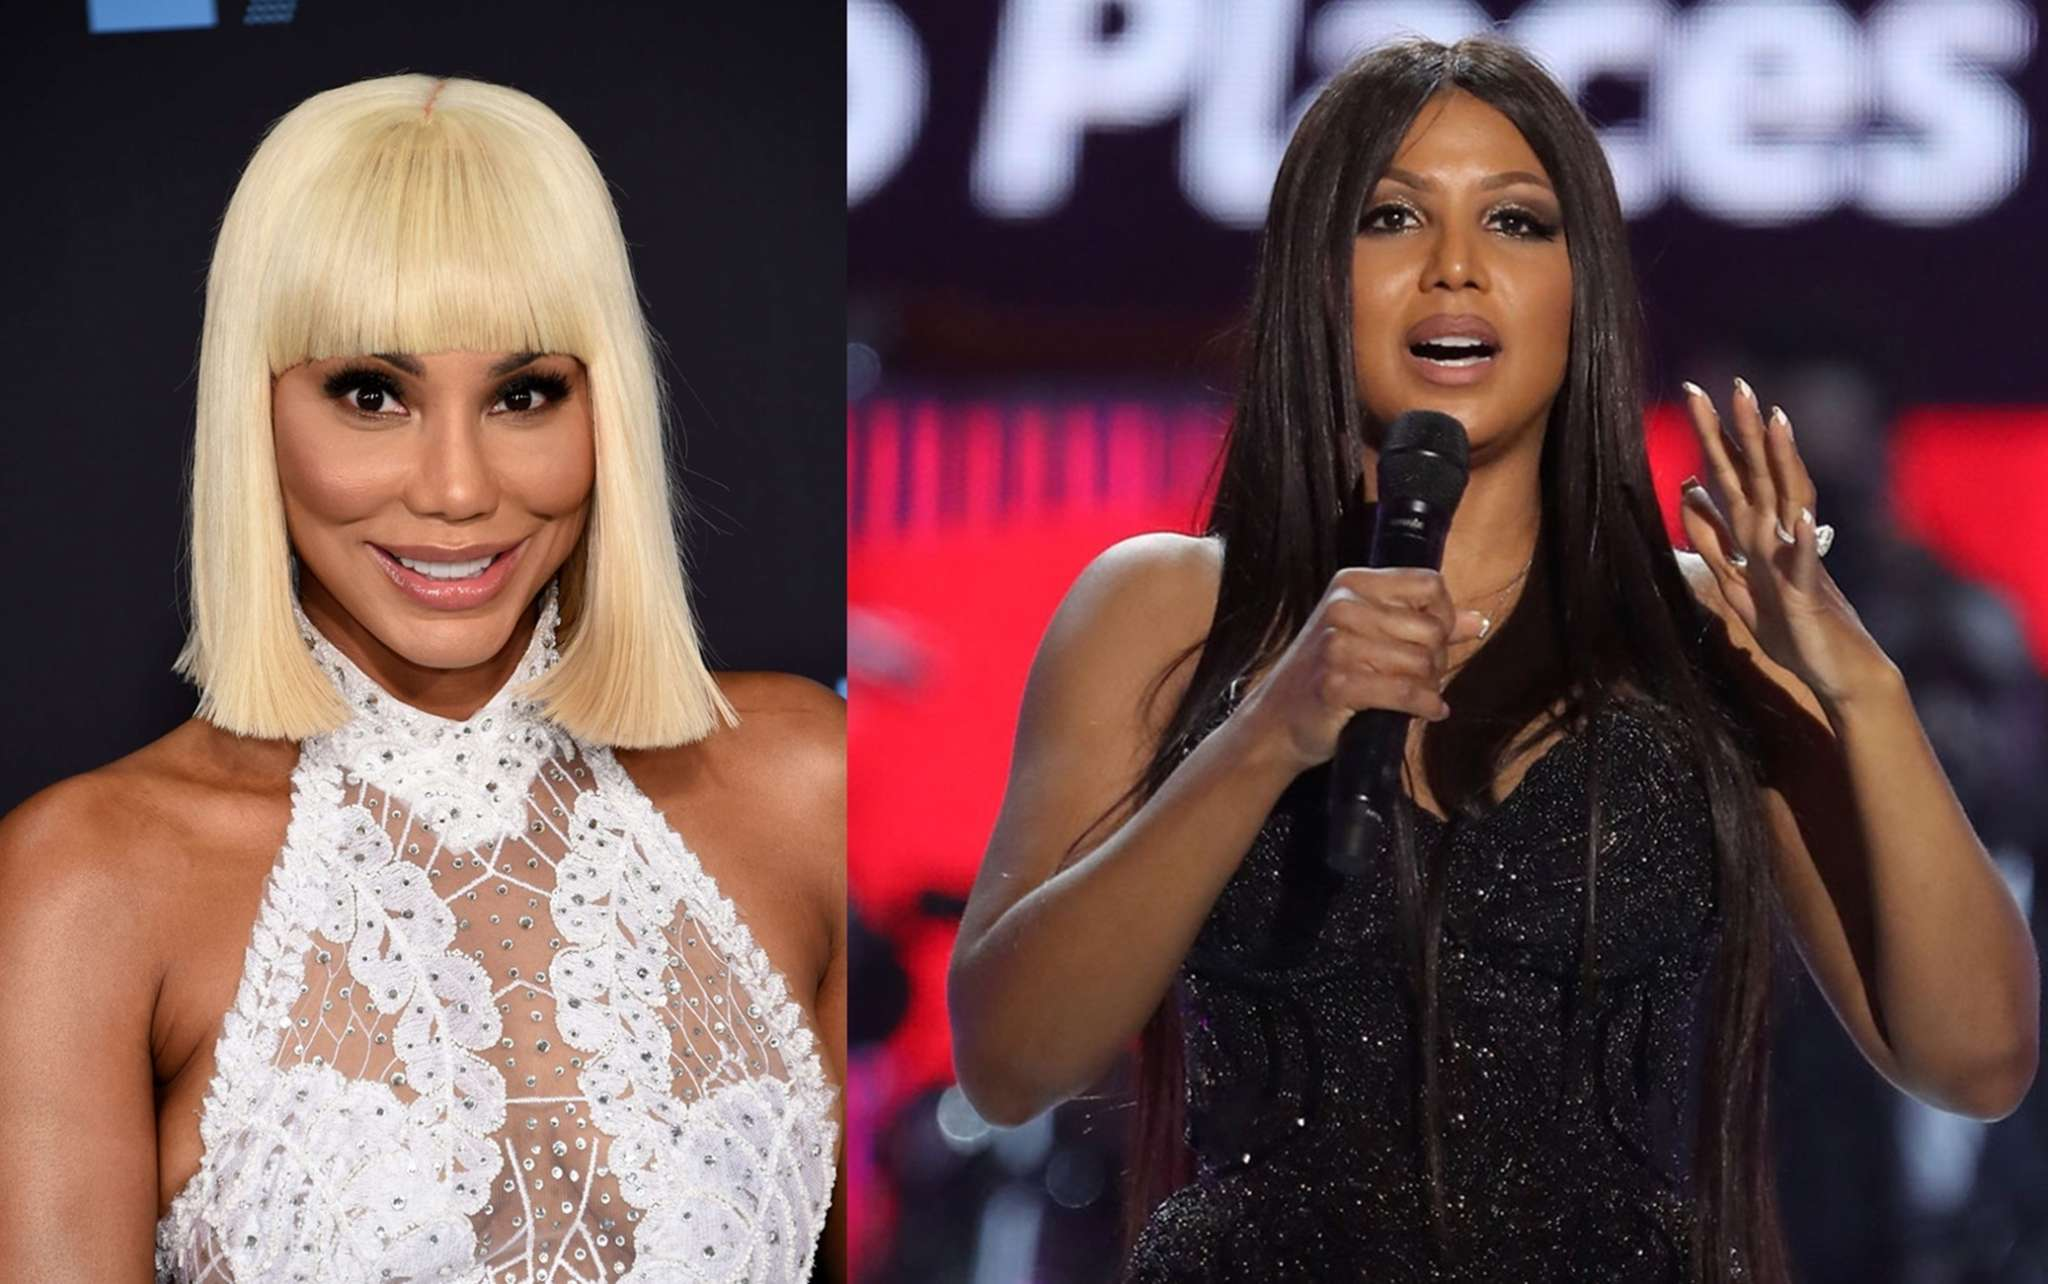 Tamar Braxton Praises Her Sister: 'Congratulations Living Legend Toni Braxton On A Sold Out Tour'